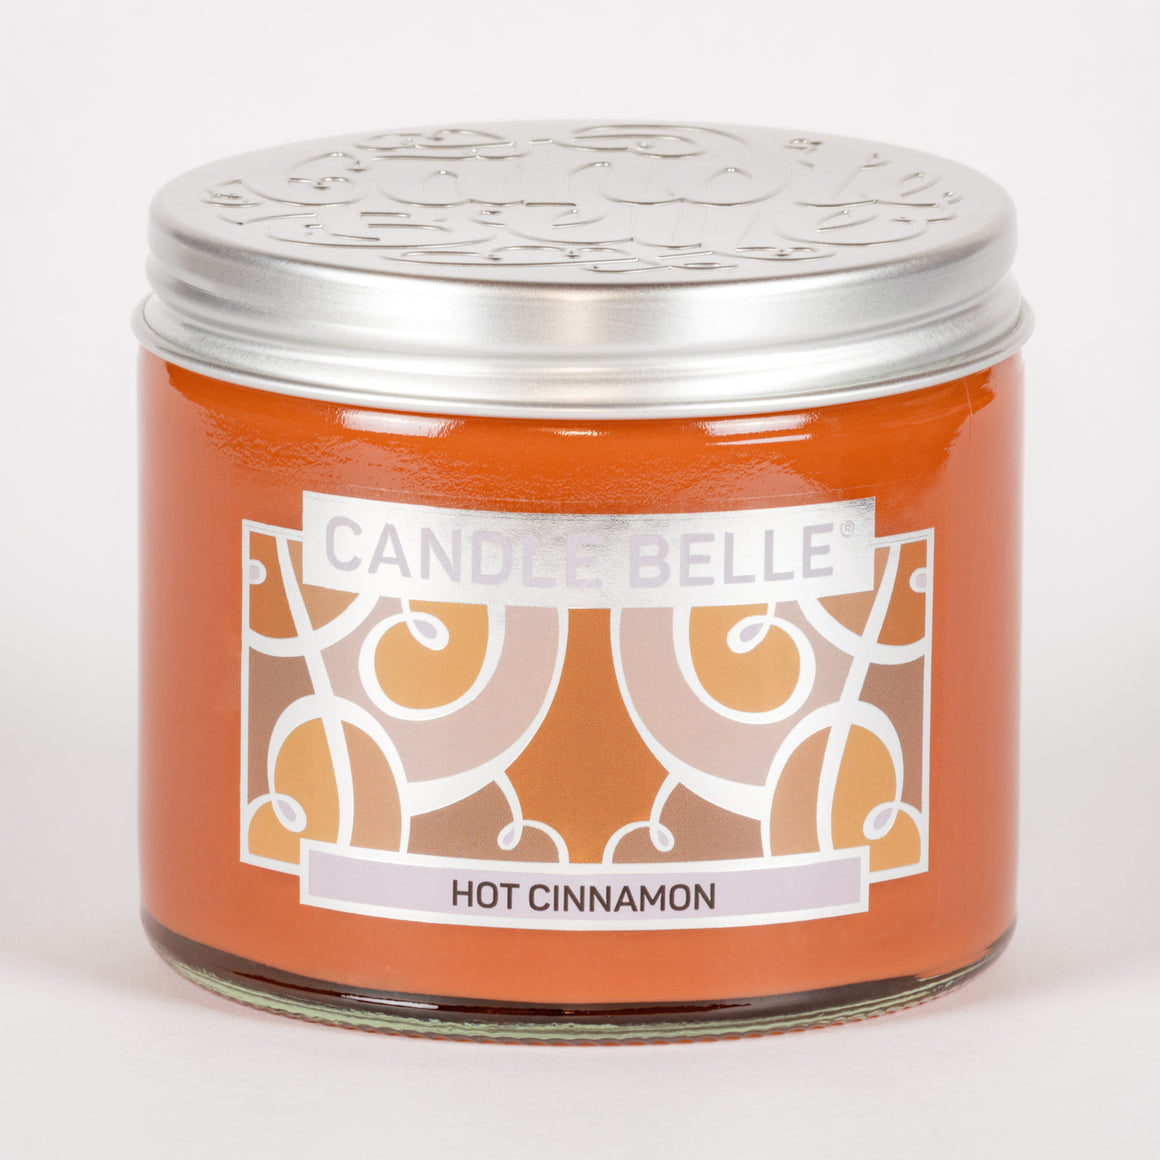 Candle Belle® Hot Cinnamon Fragranced Twin Wick Jar Candle 240g (3 Pack)